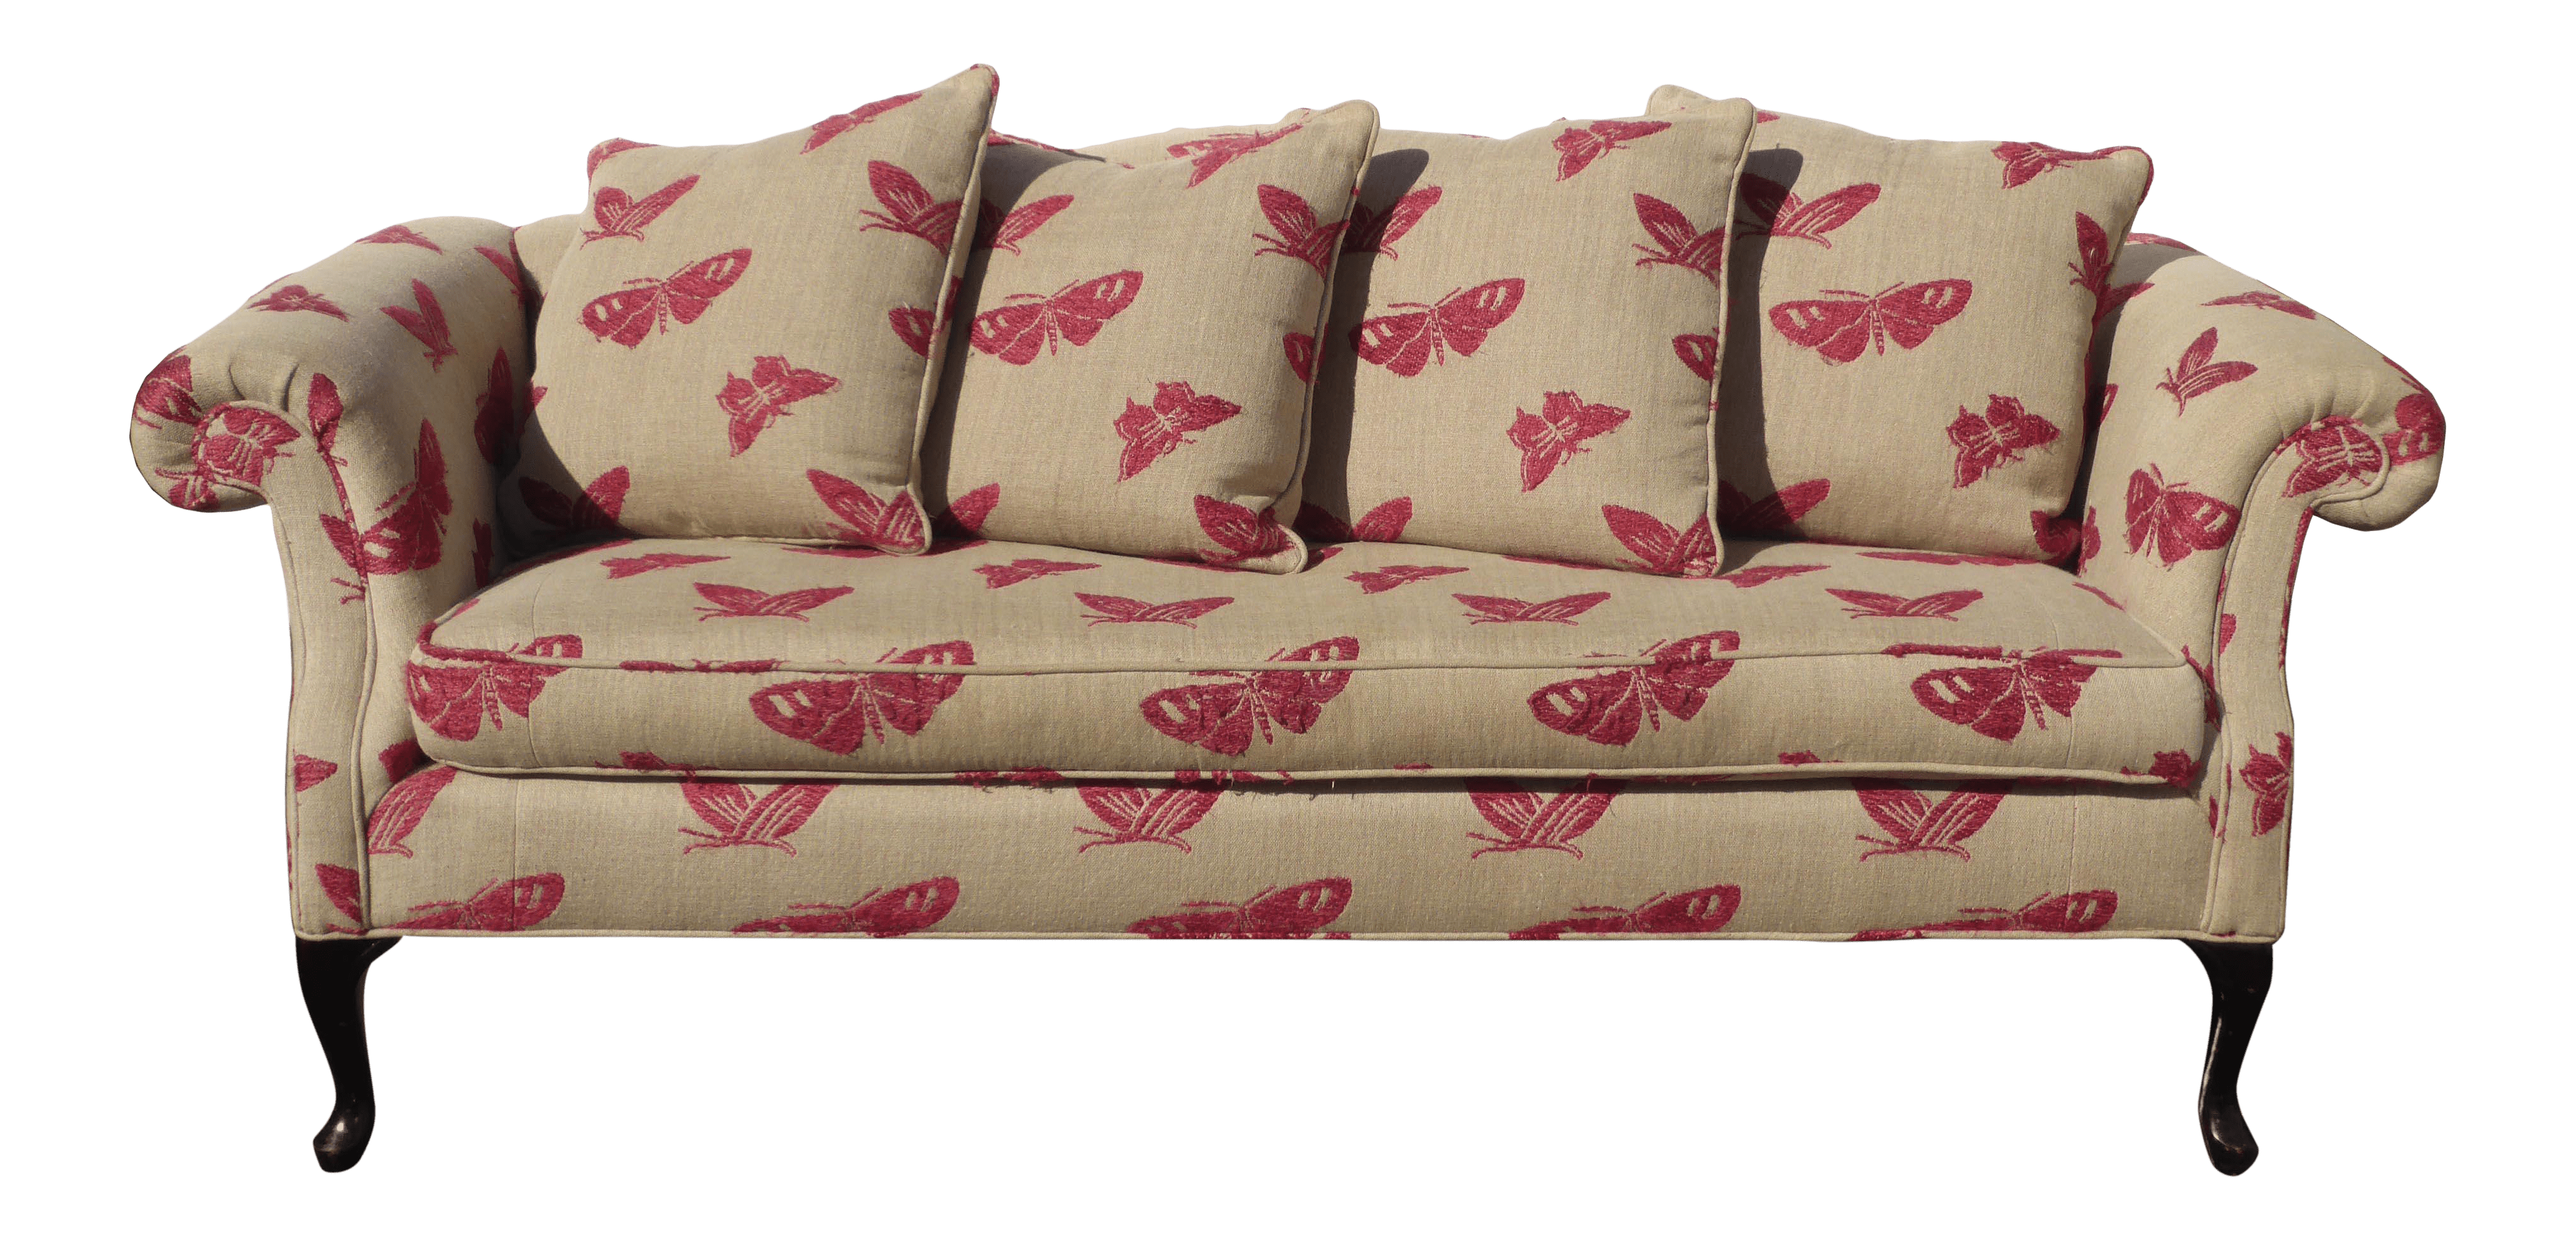 Vintage Couch Vintage Sofa Pink Butterflies On Beige Linen French Country Couch Down Feathers